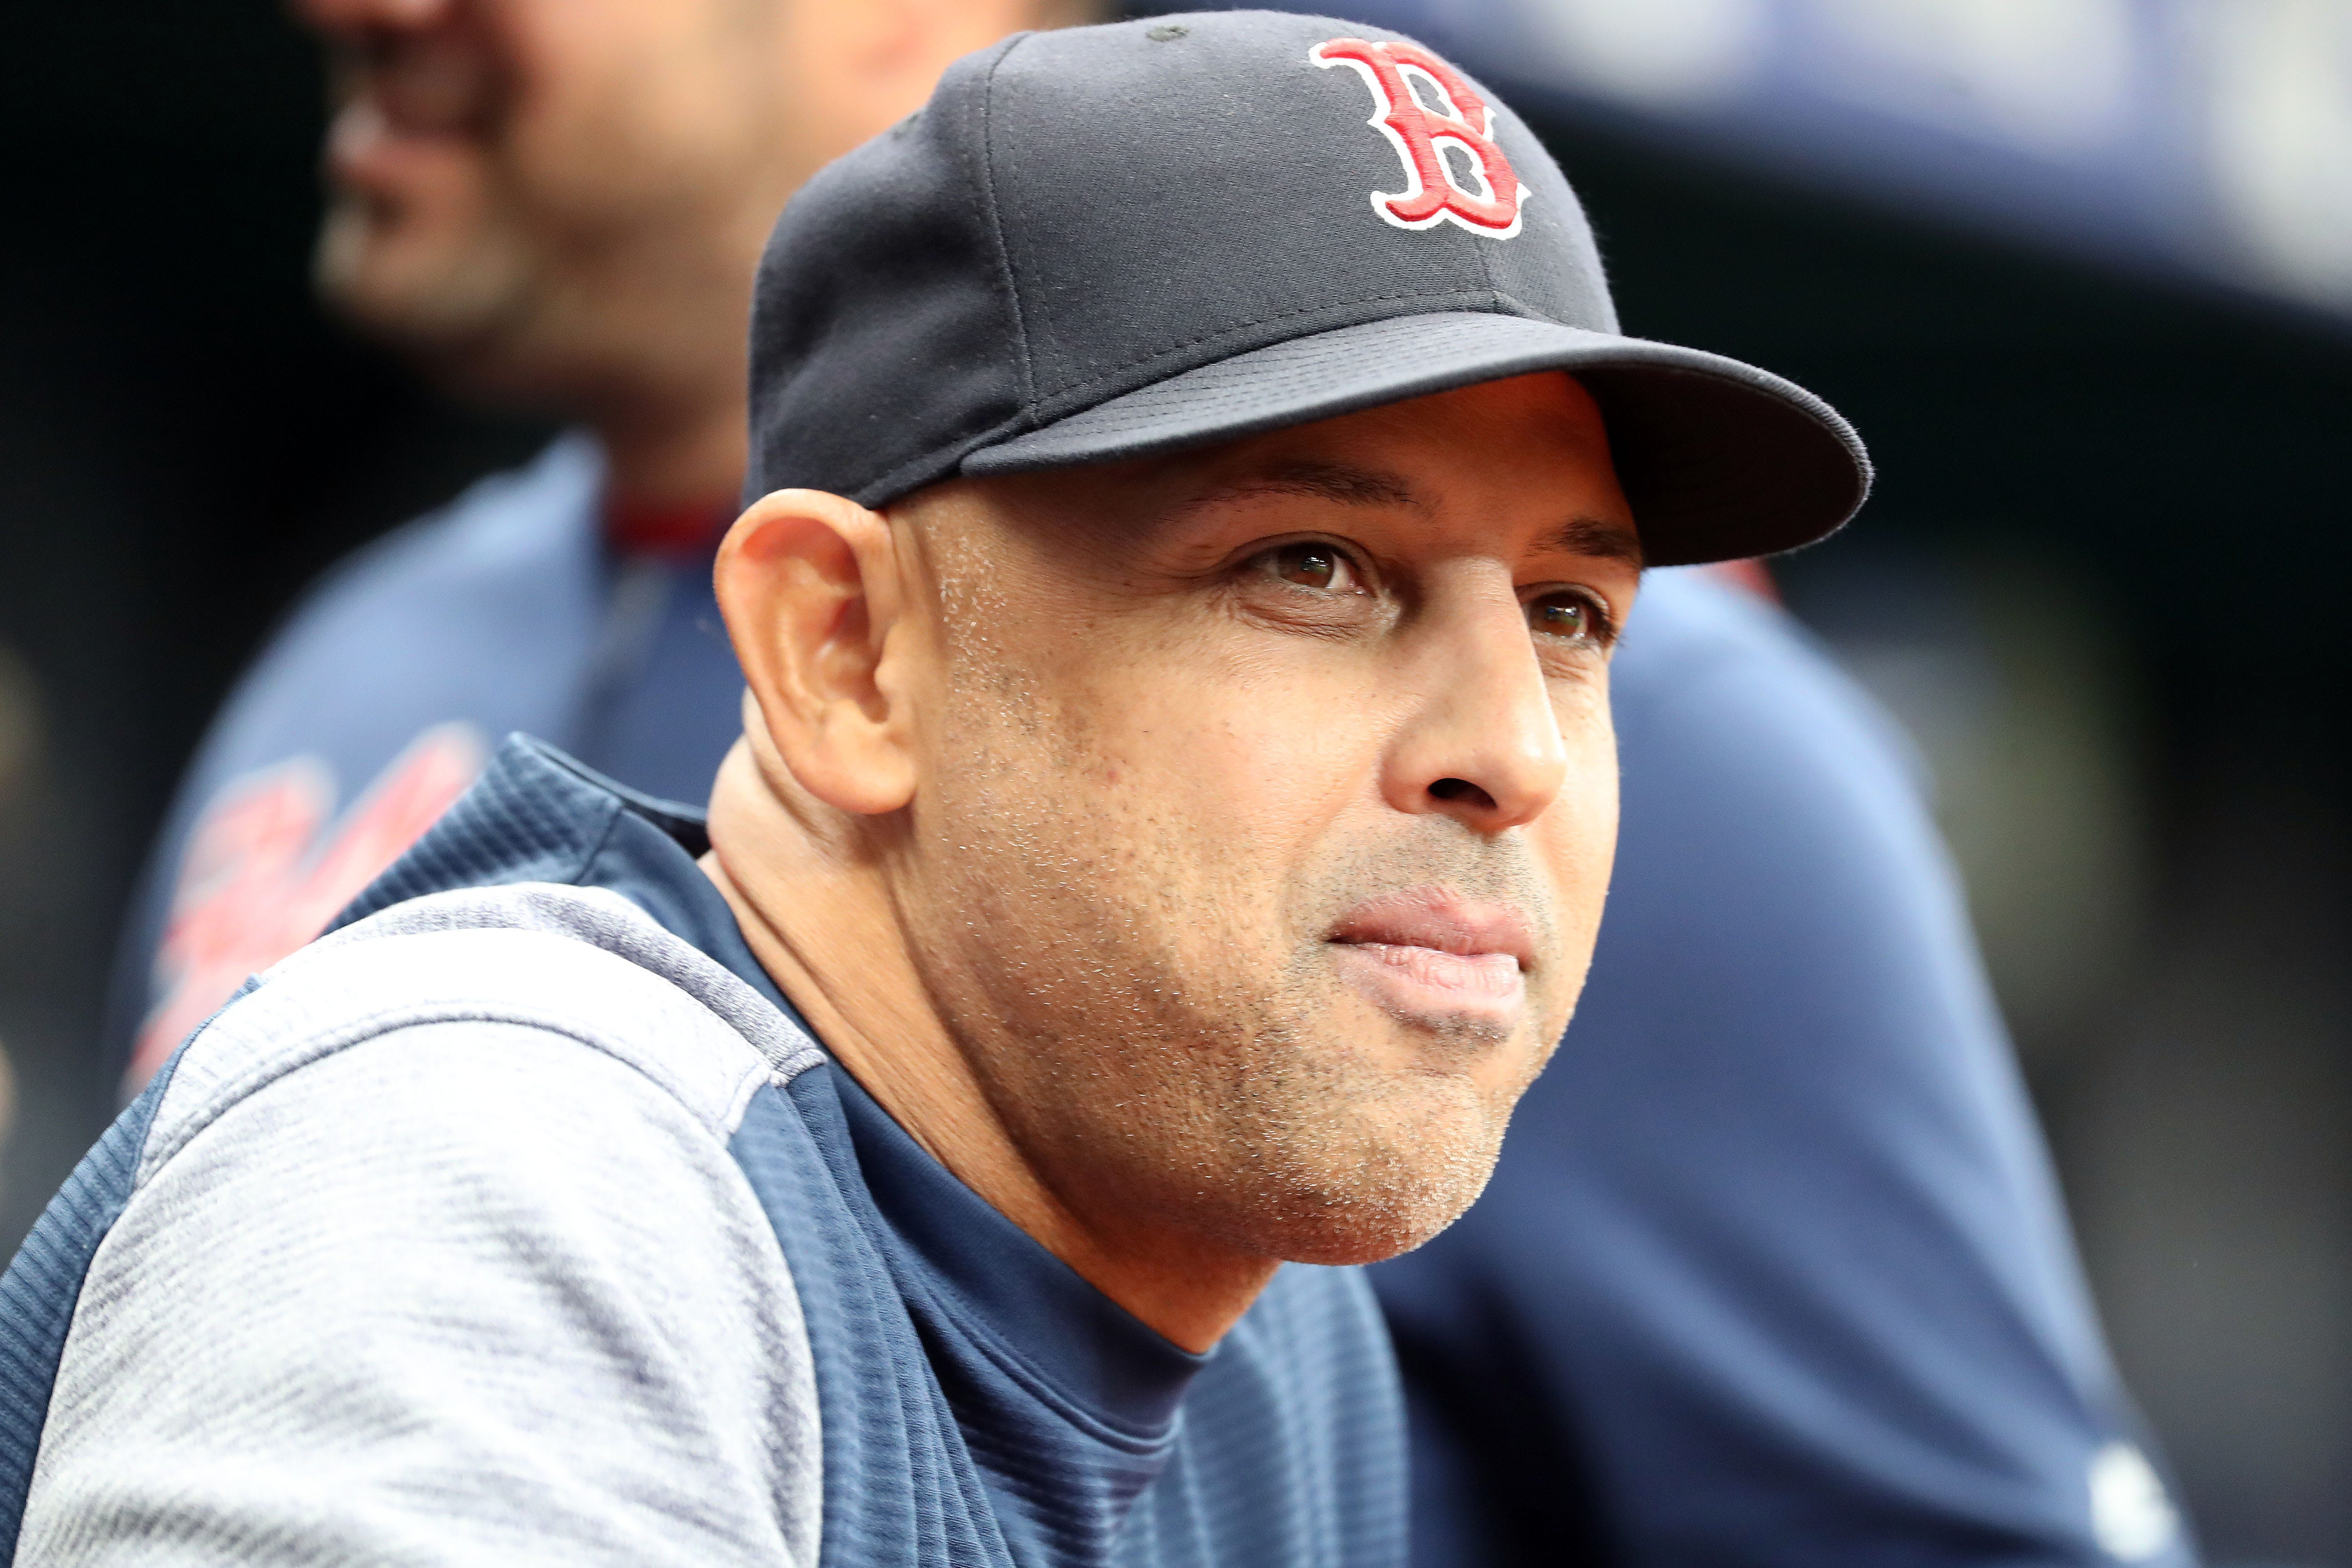 Red Sox manager Alex Cora to skip White House visit: 'I don't feel comfortable'